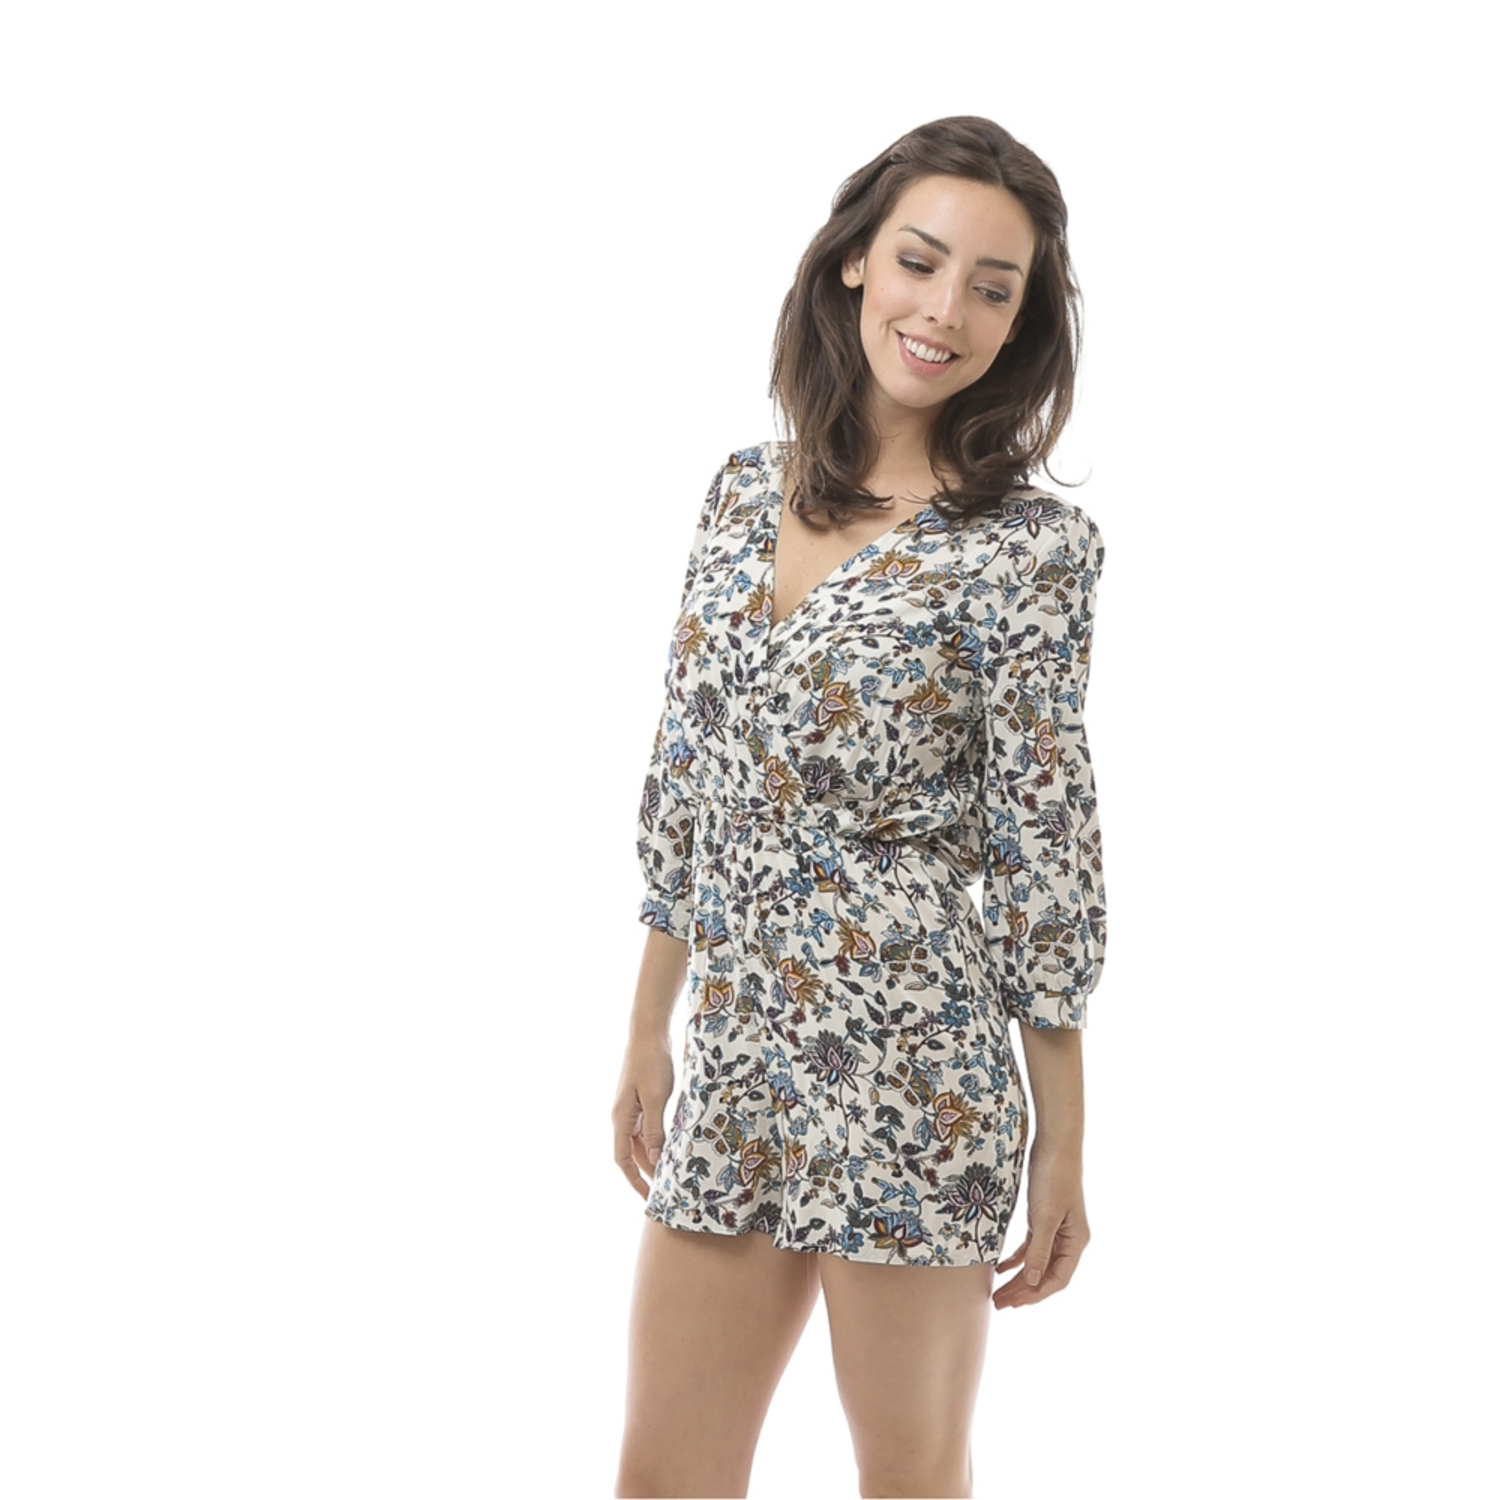 Women 3/4 Sleeve Floral Print Short Romper Size Large (L) - Colorful